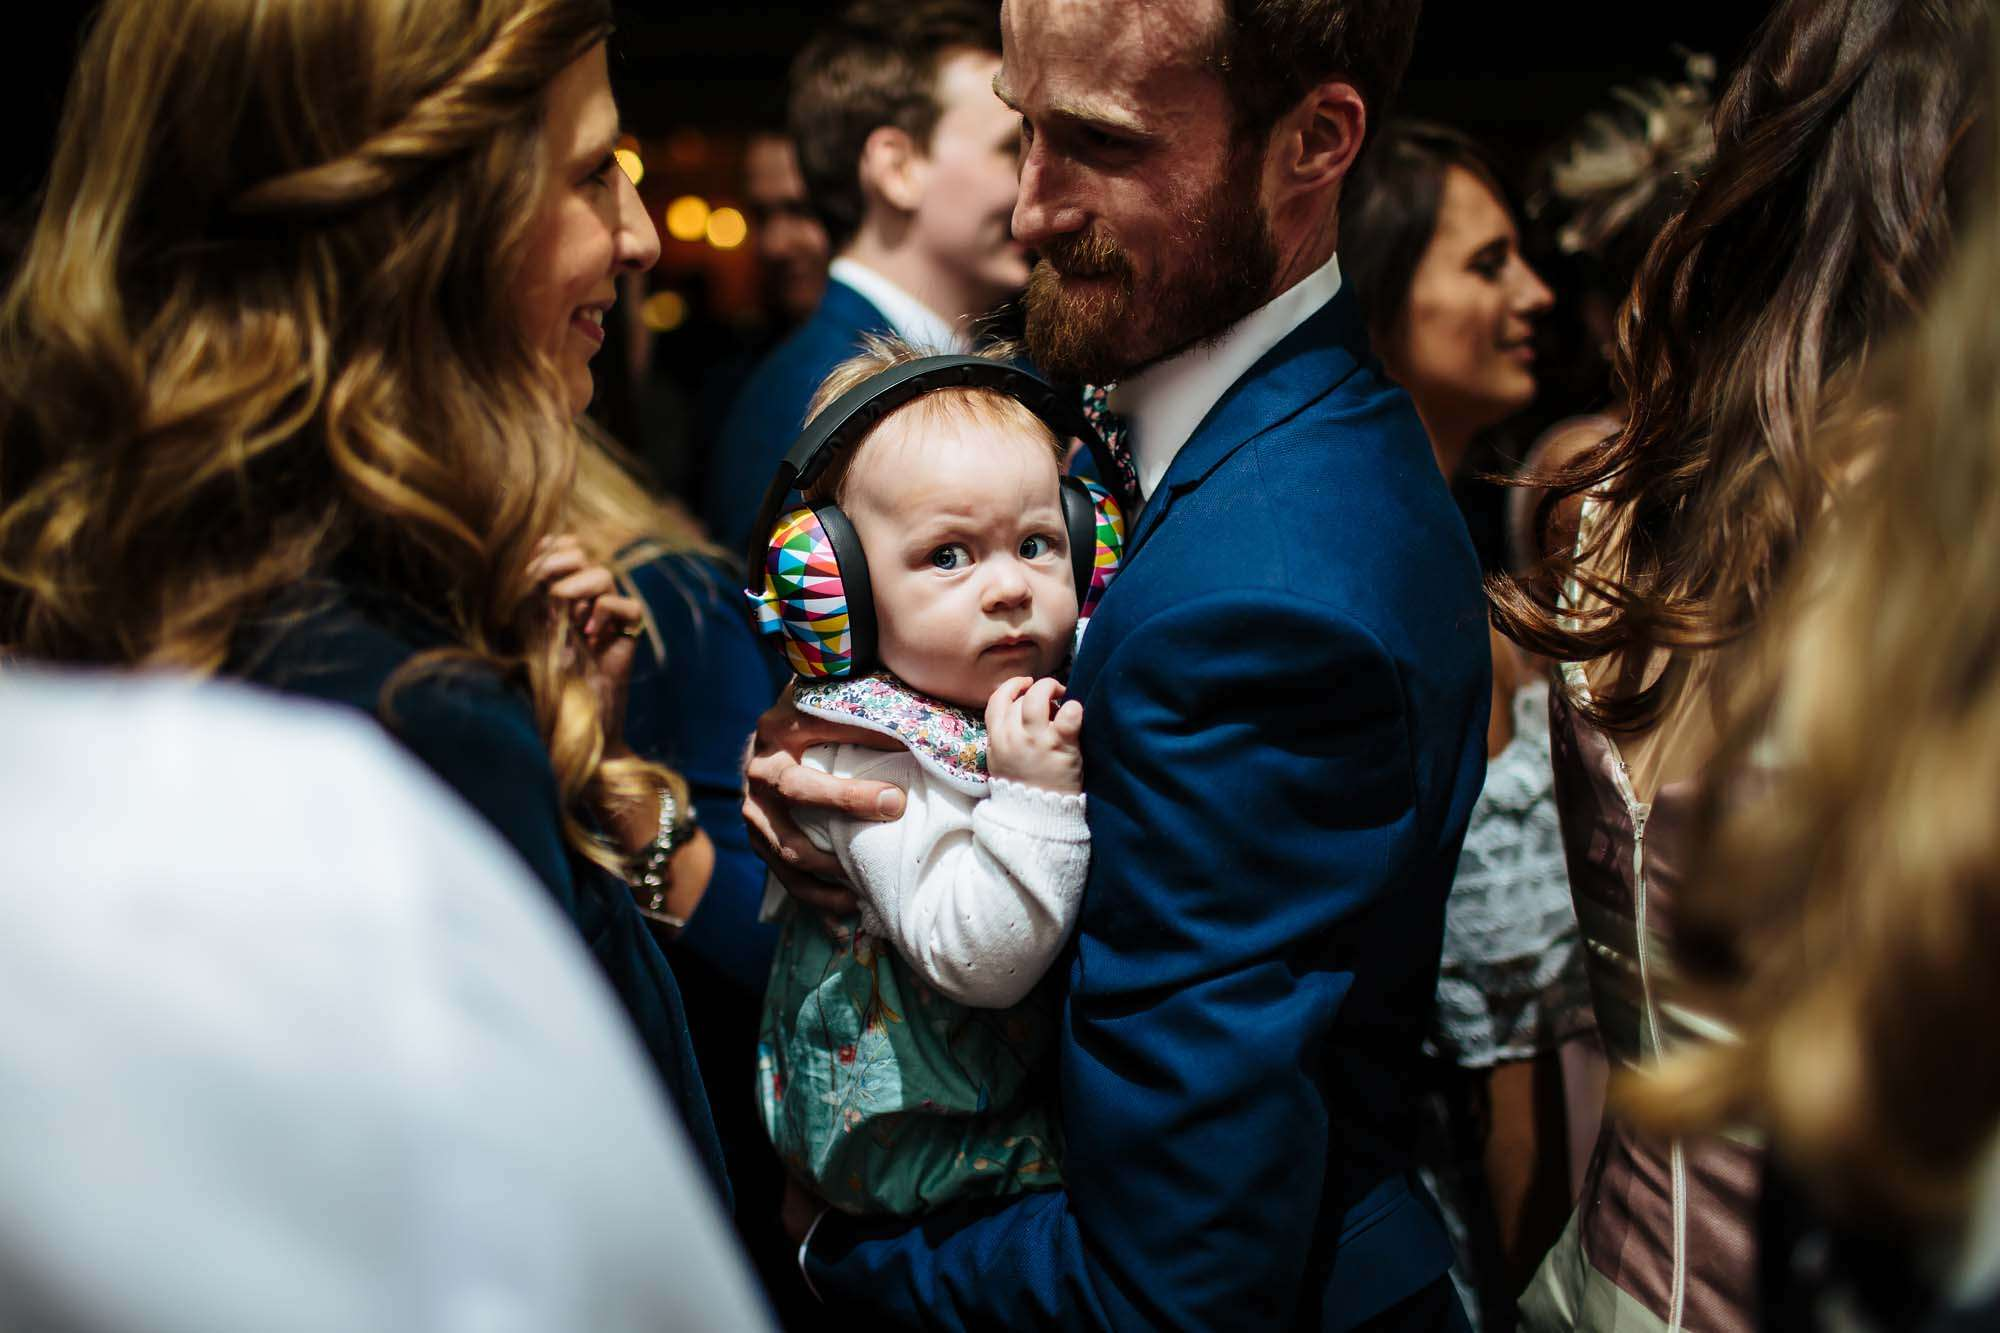 Young baby with ear defenders at a wedding